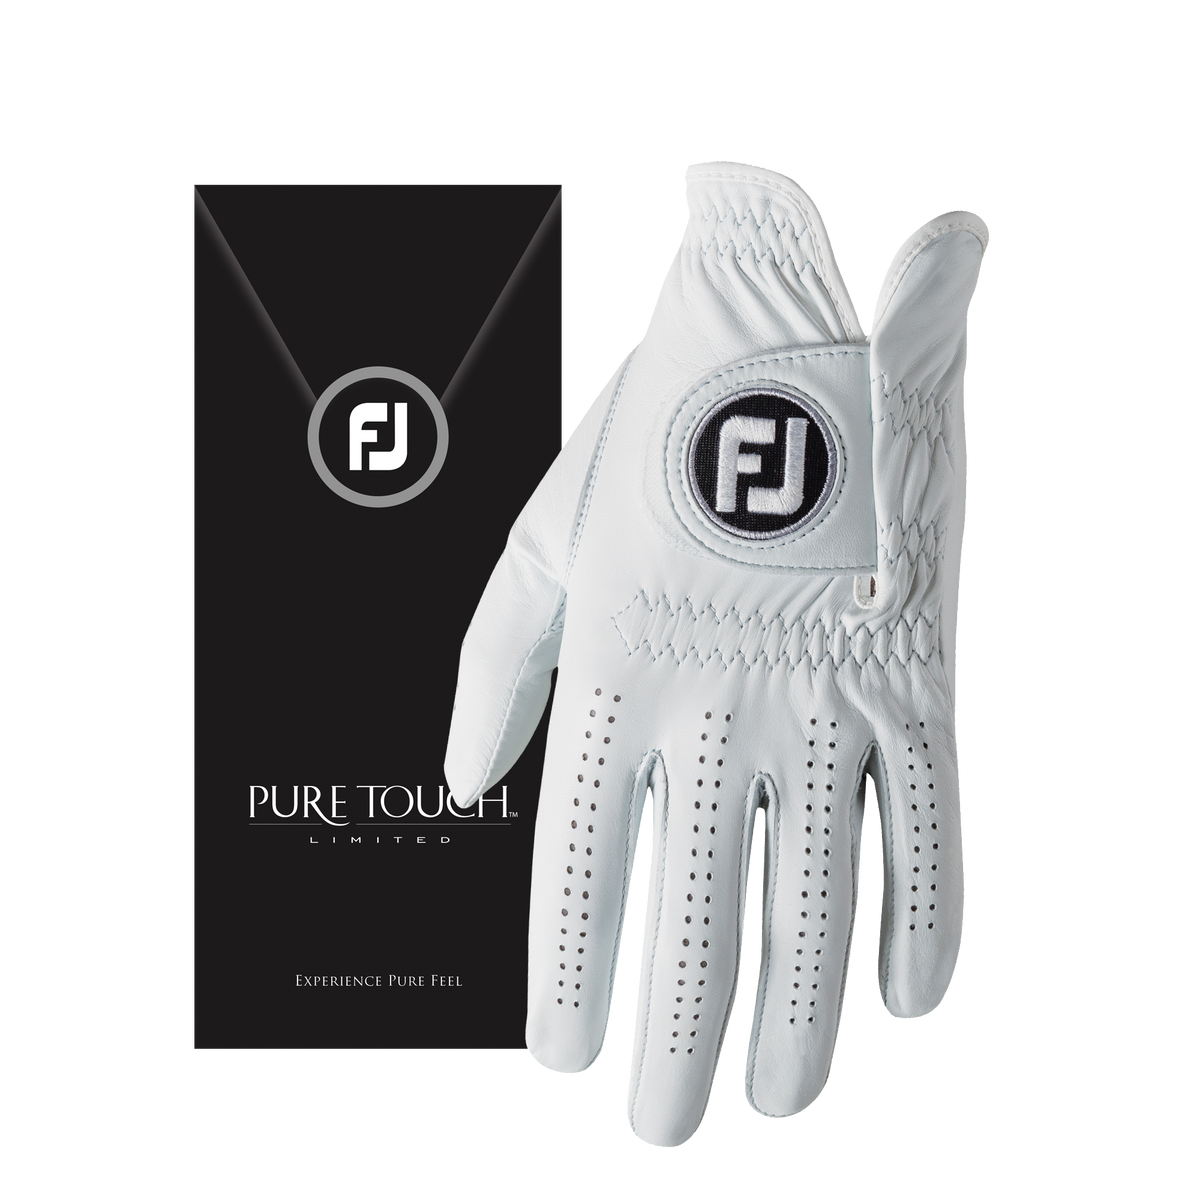 Pure Touch Limited